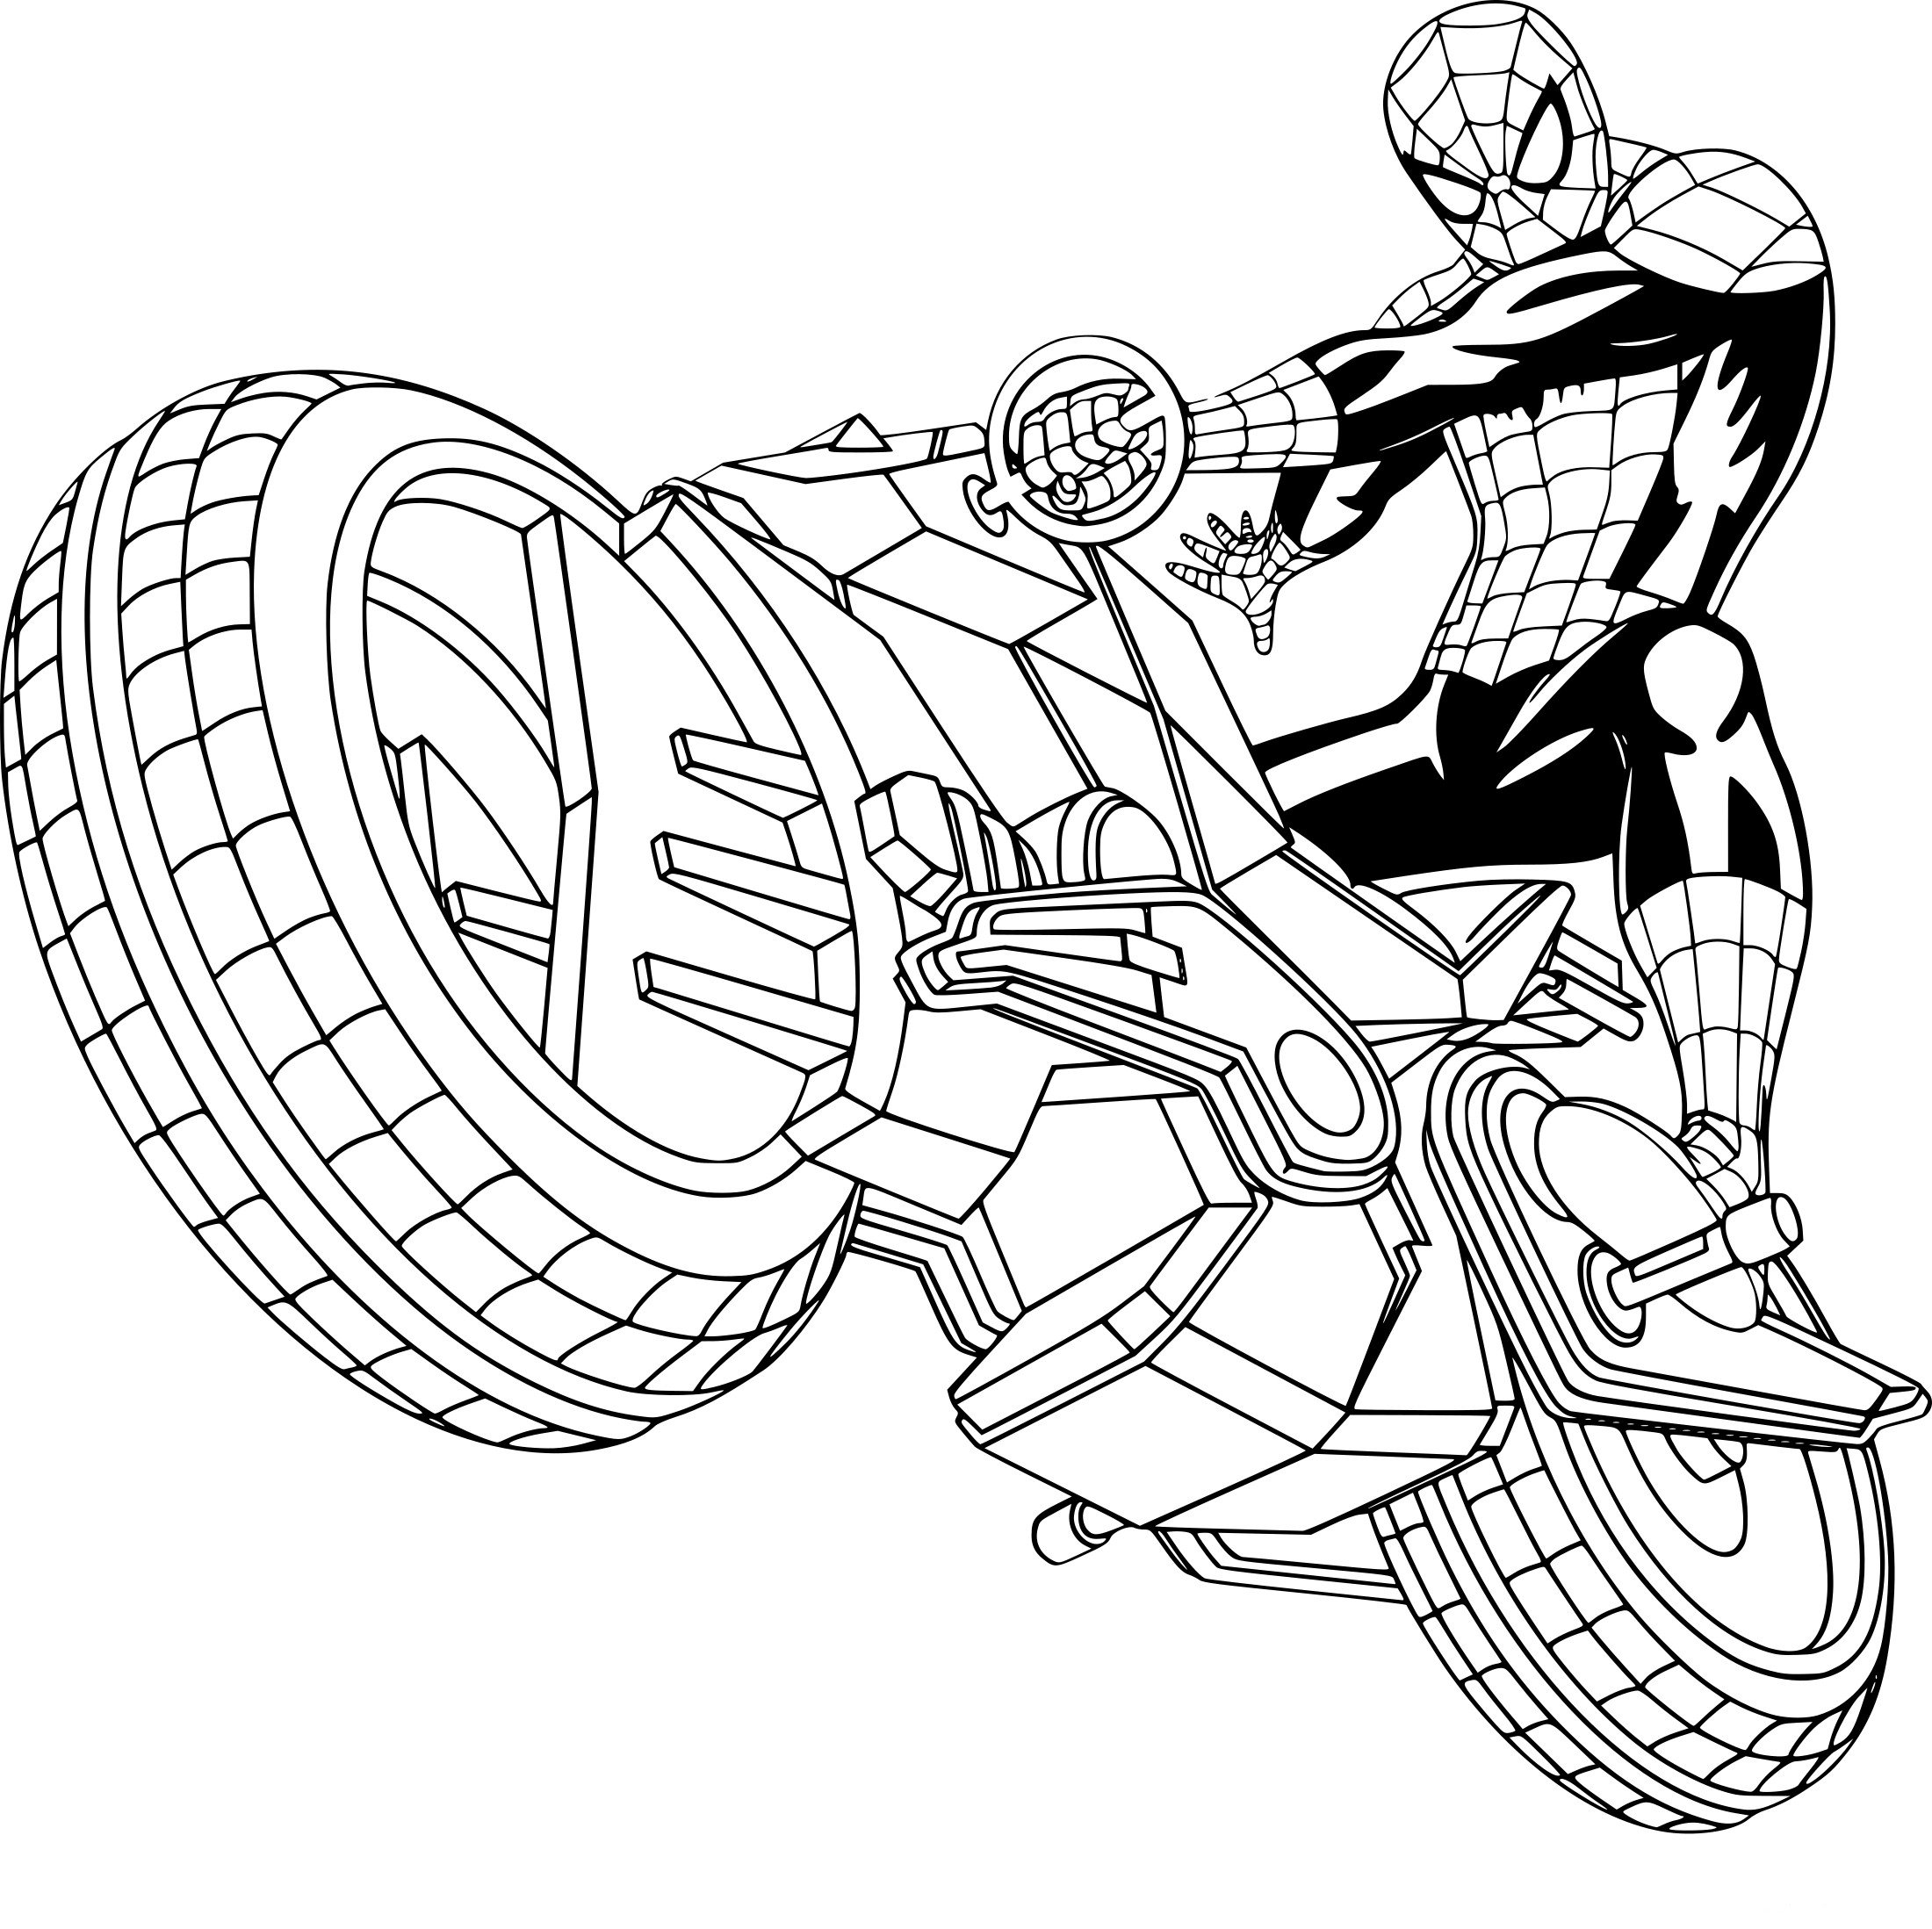 Coloriage Spiderman Moto À Imprimer Sur Coloriages destiné Coloriage Moto - GreatestColoringBook.com